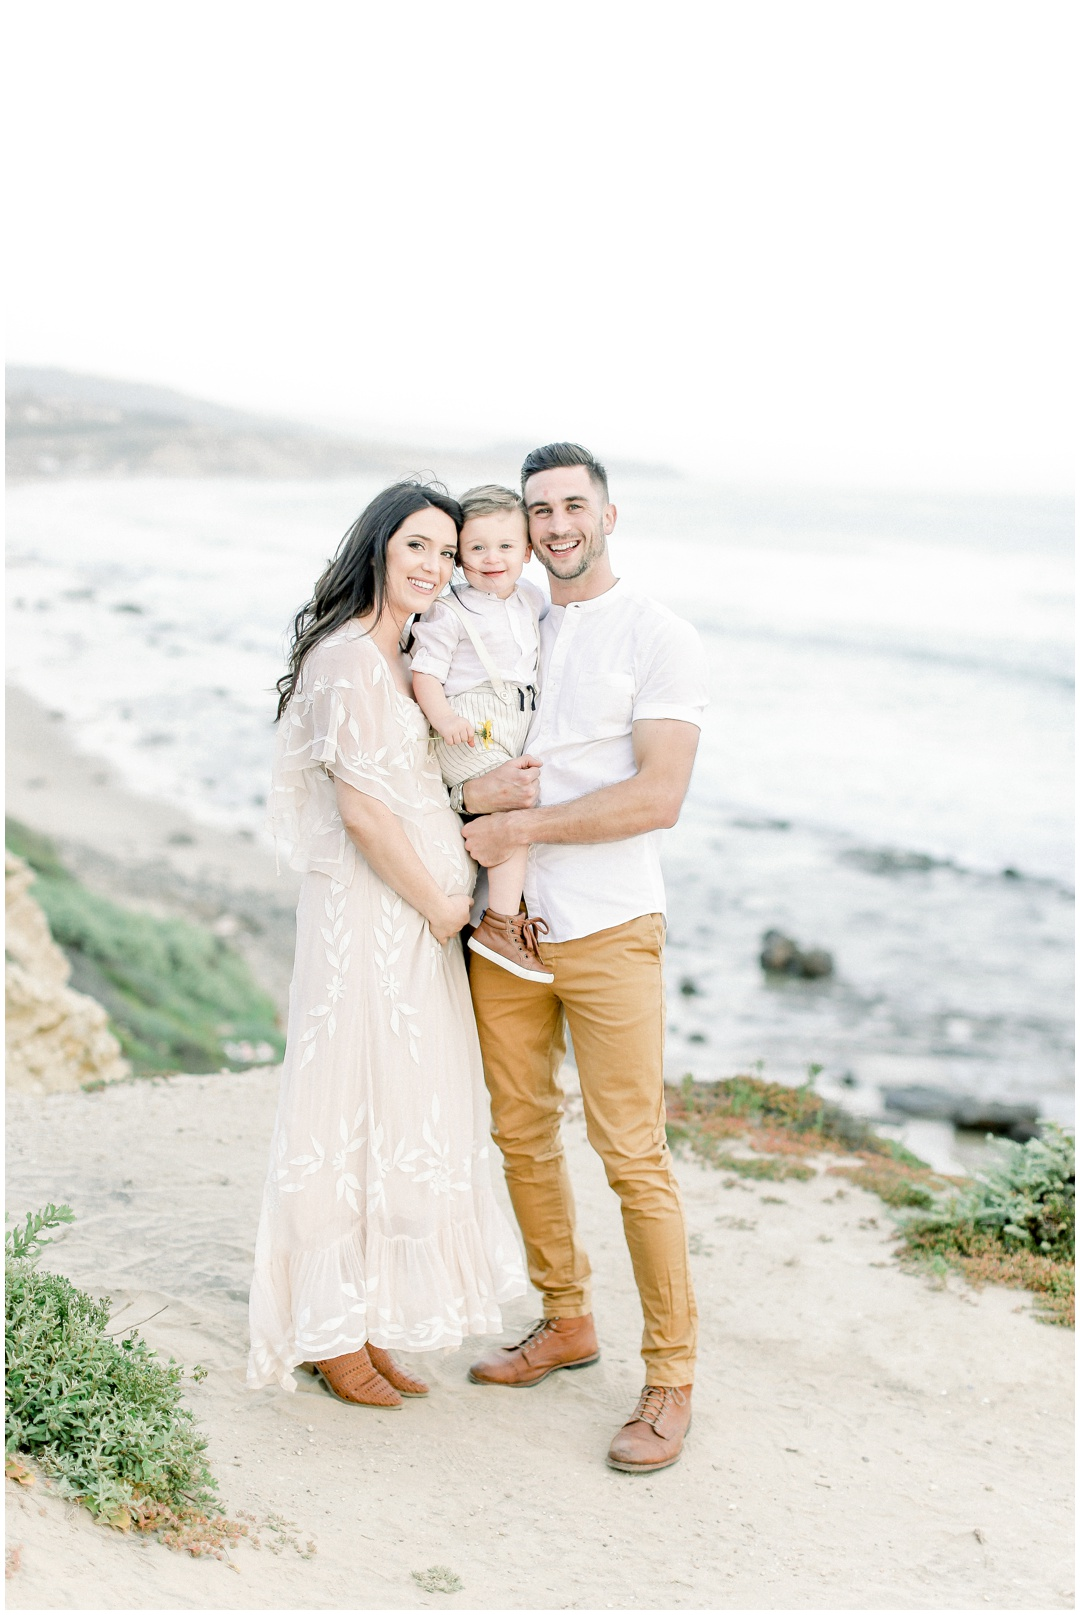 Newport_Beach_Newborn_Light_Airy_Natural_Photographer_Newport_Beach_Photographer_Orange_County_Family_Photographer_Cori_Kleckner_Photography_Huntington_Beach_Photographer_Family_OC_Newborn_Danielle_Lawley_Parker_Maternity_Family_Jordan_Lawley_3337.jpg